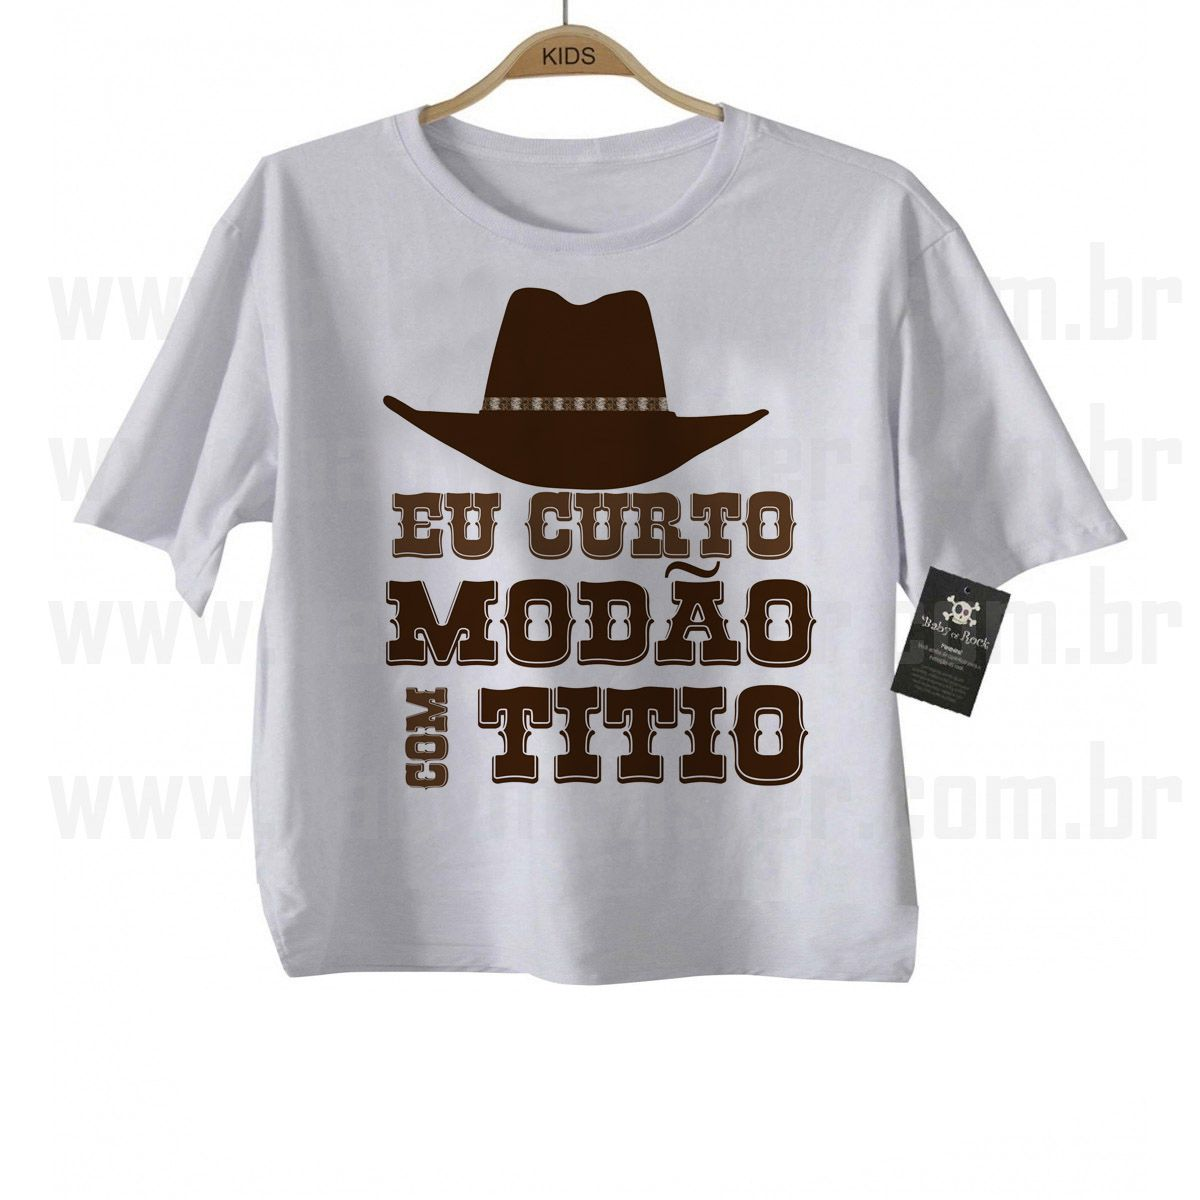 Camiseta Sertanejo Curto Modão com o Titio- White  - Baby Monster - Body Bebe